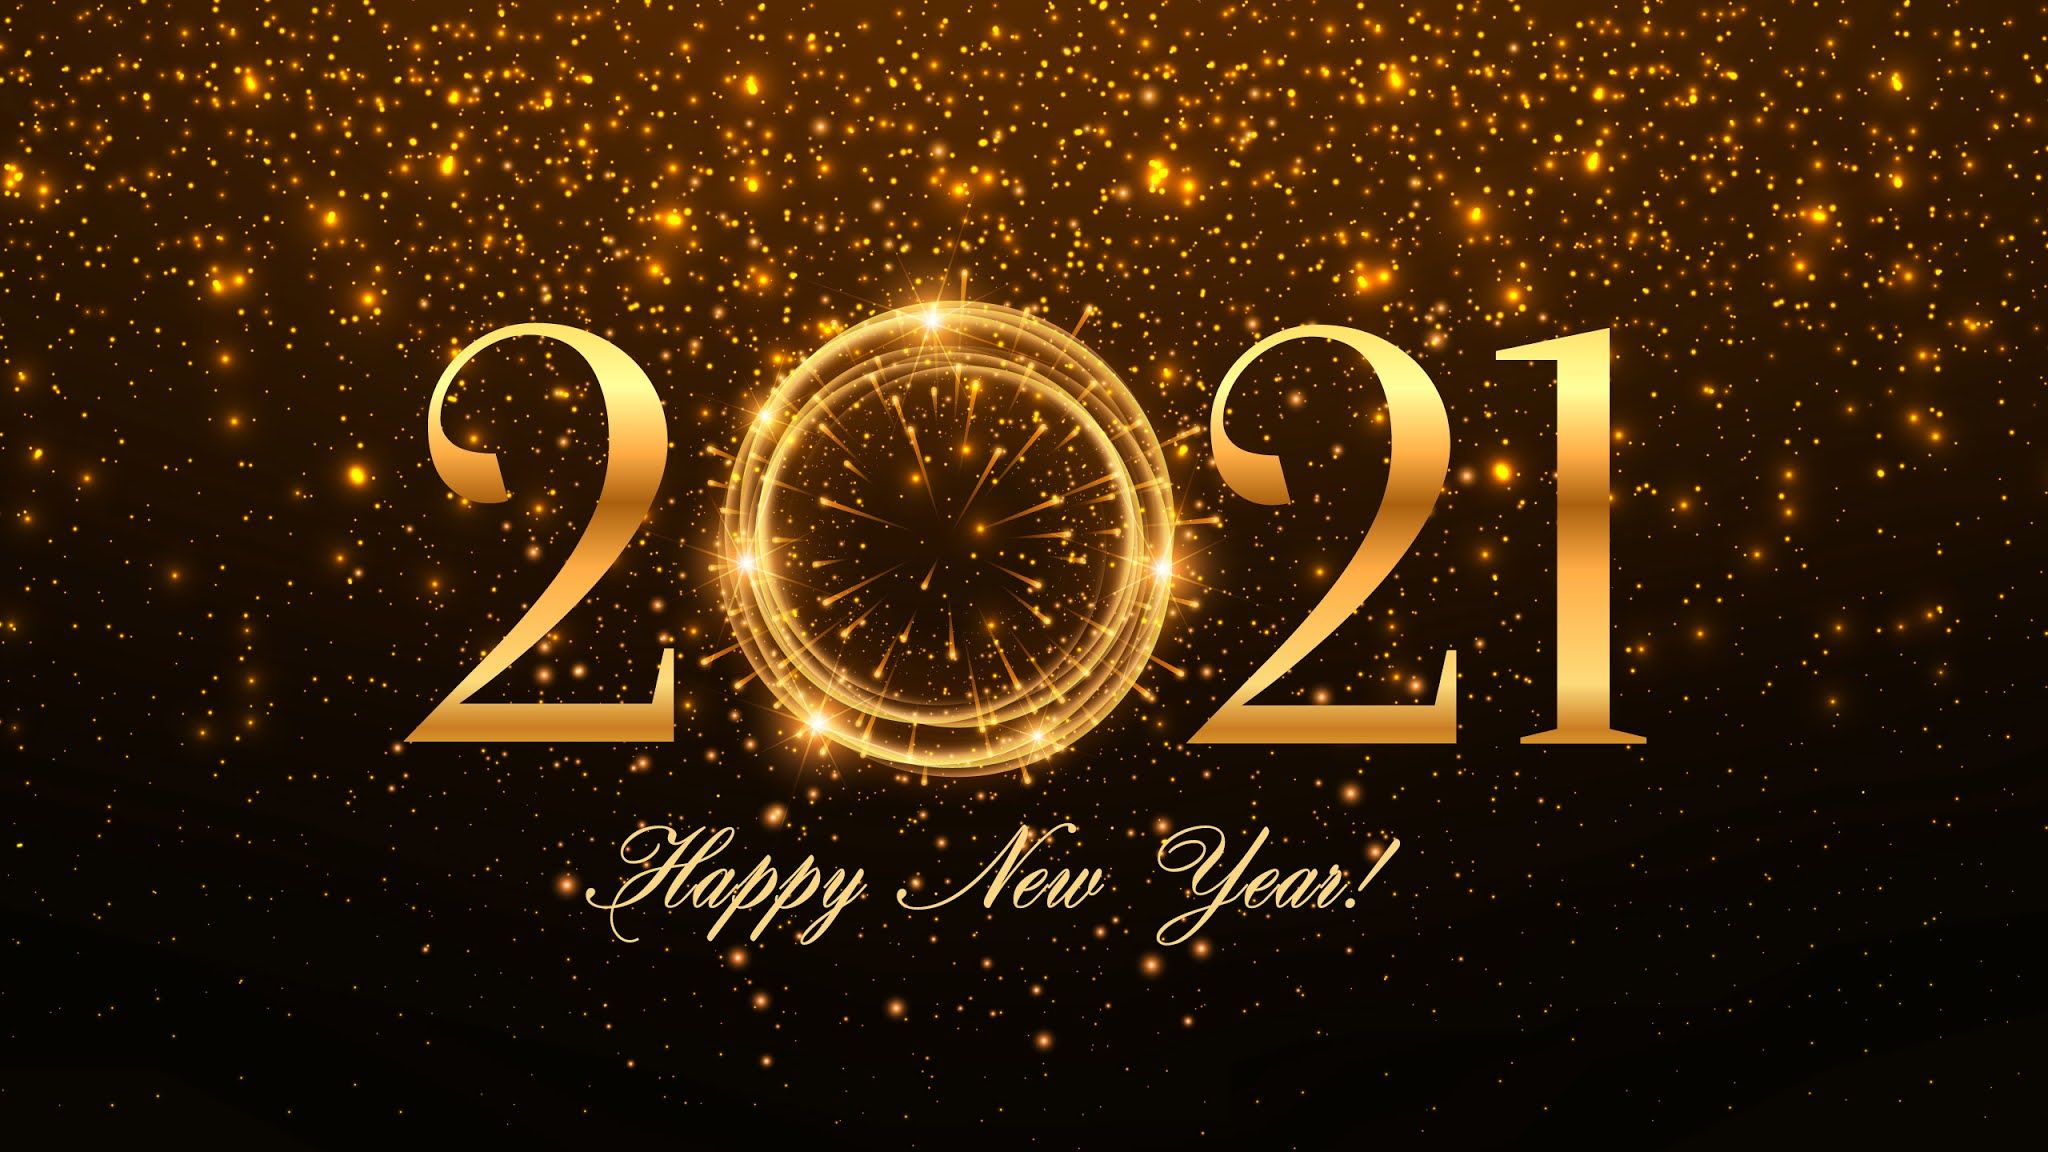 Happy New Year 2021 Wallpapers - Top Free Happy New Year 2021 Backgrounds -  WallpaperAccess